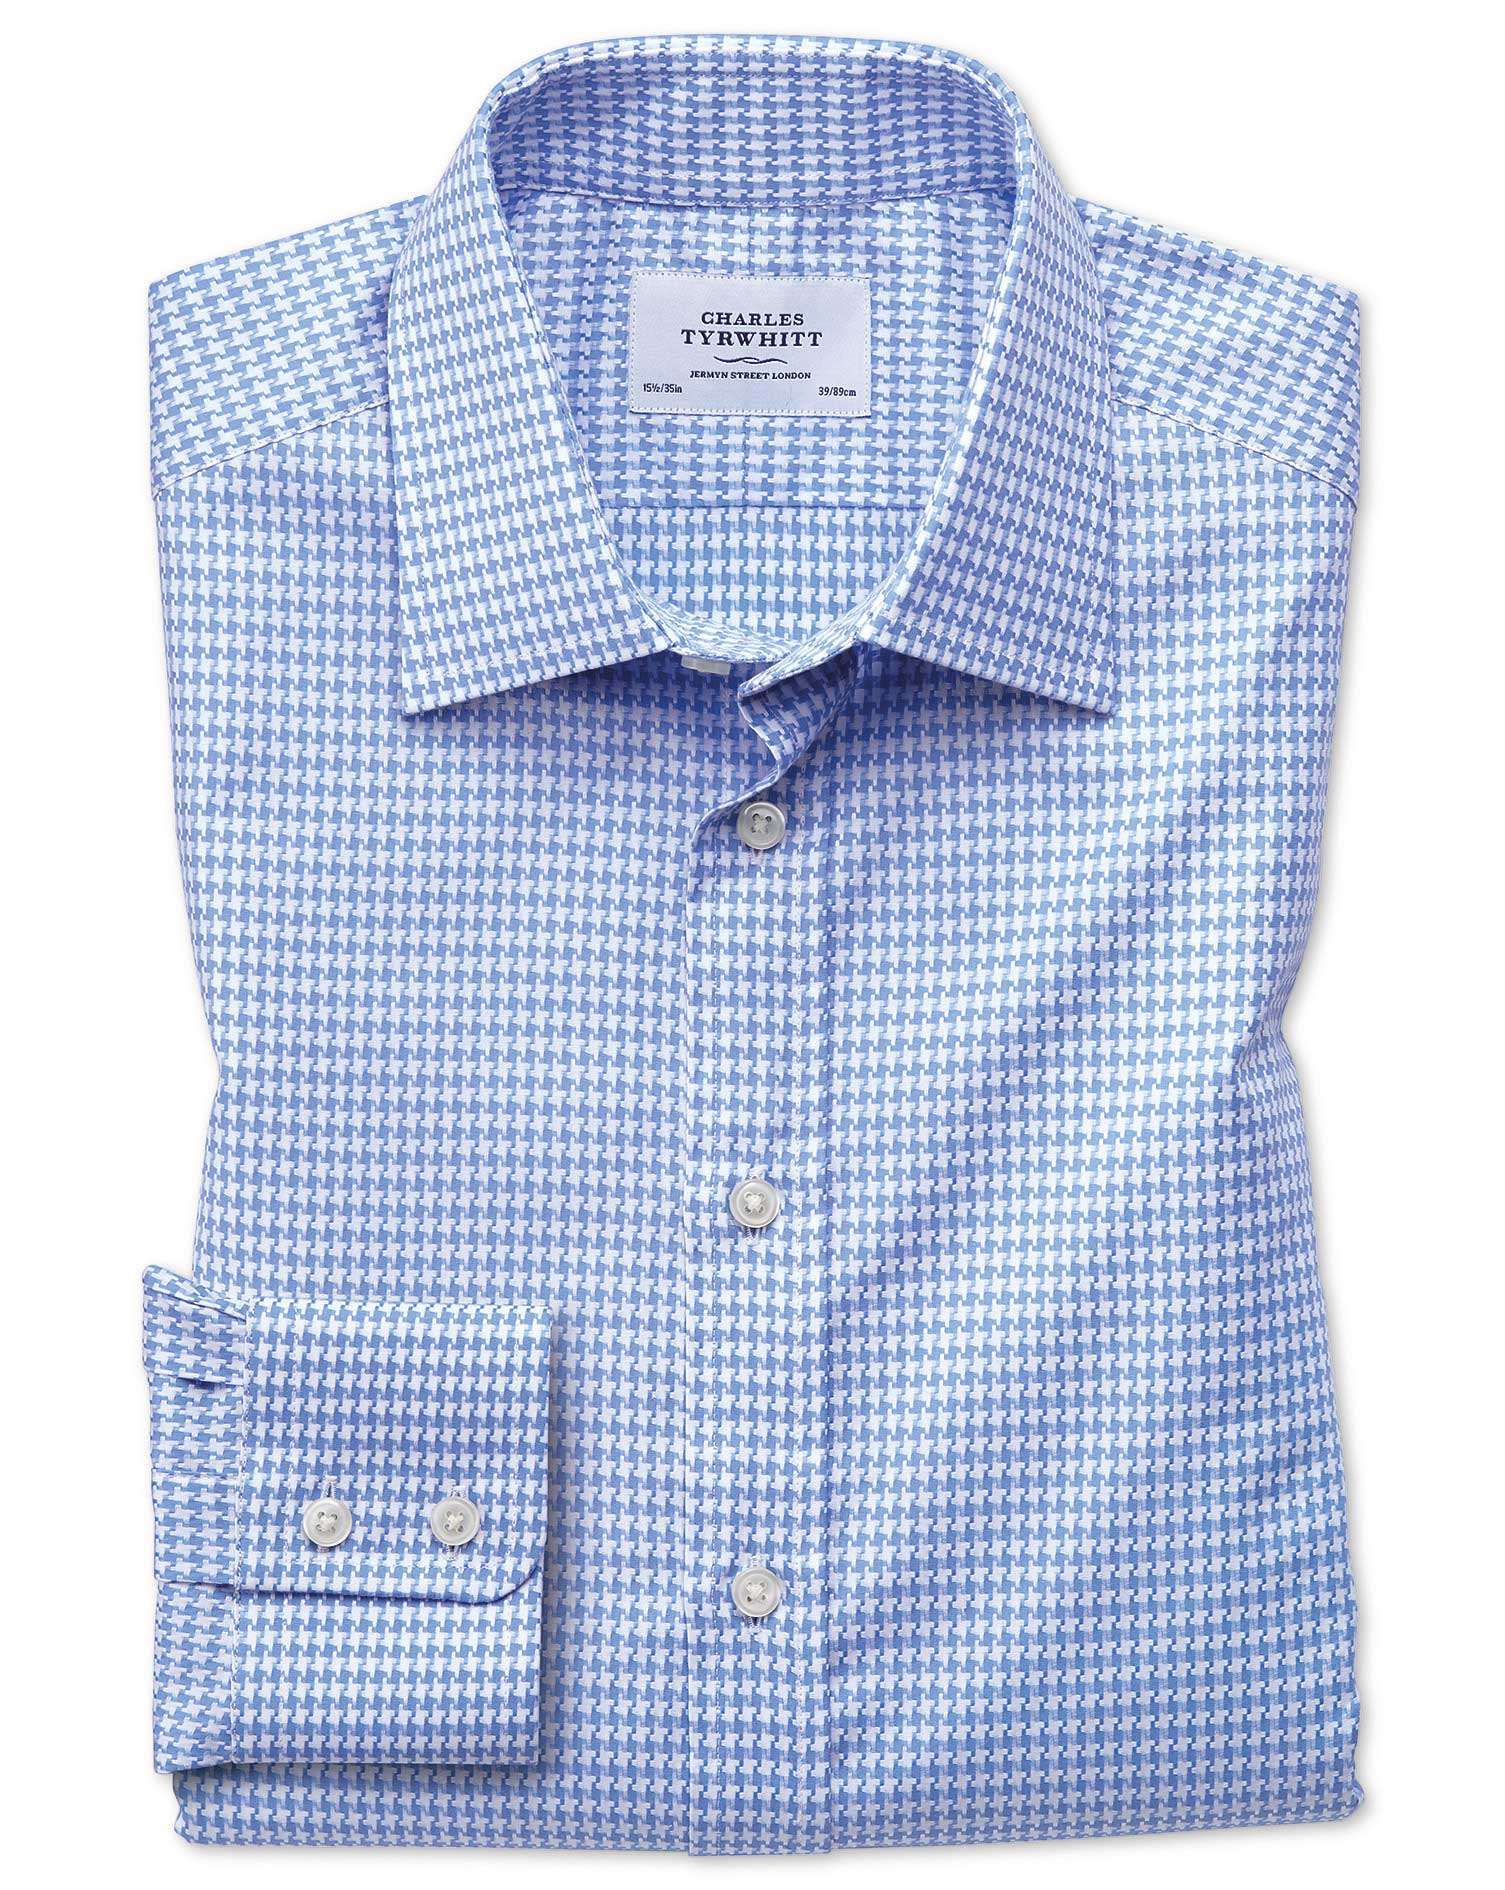 Slim Fit Large Puppytooth Sky Blue Cotton Formal Shirt Single Cuff Size 16.5/34 by Charles Tyrwhitt